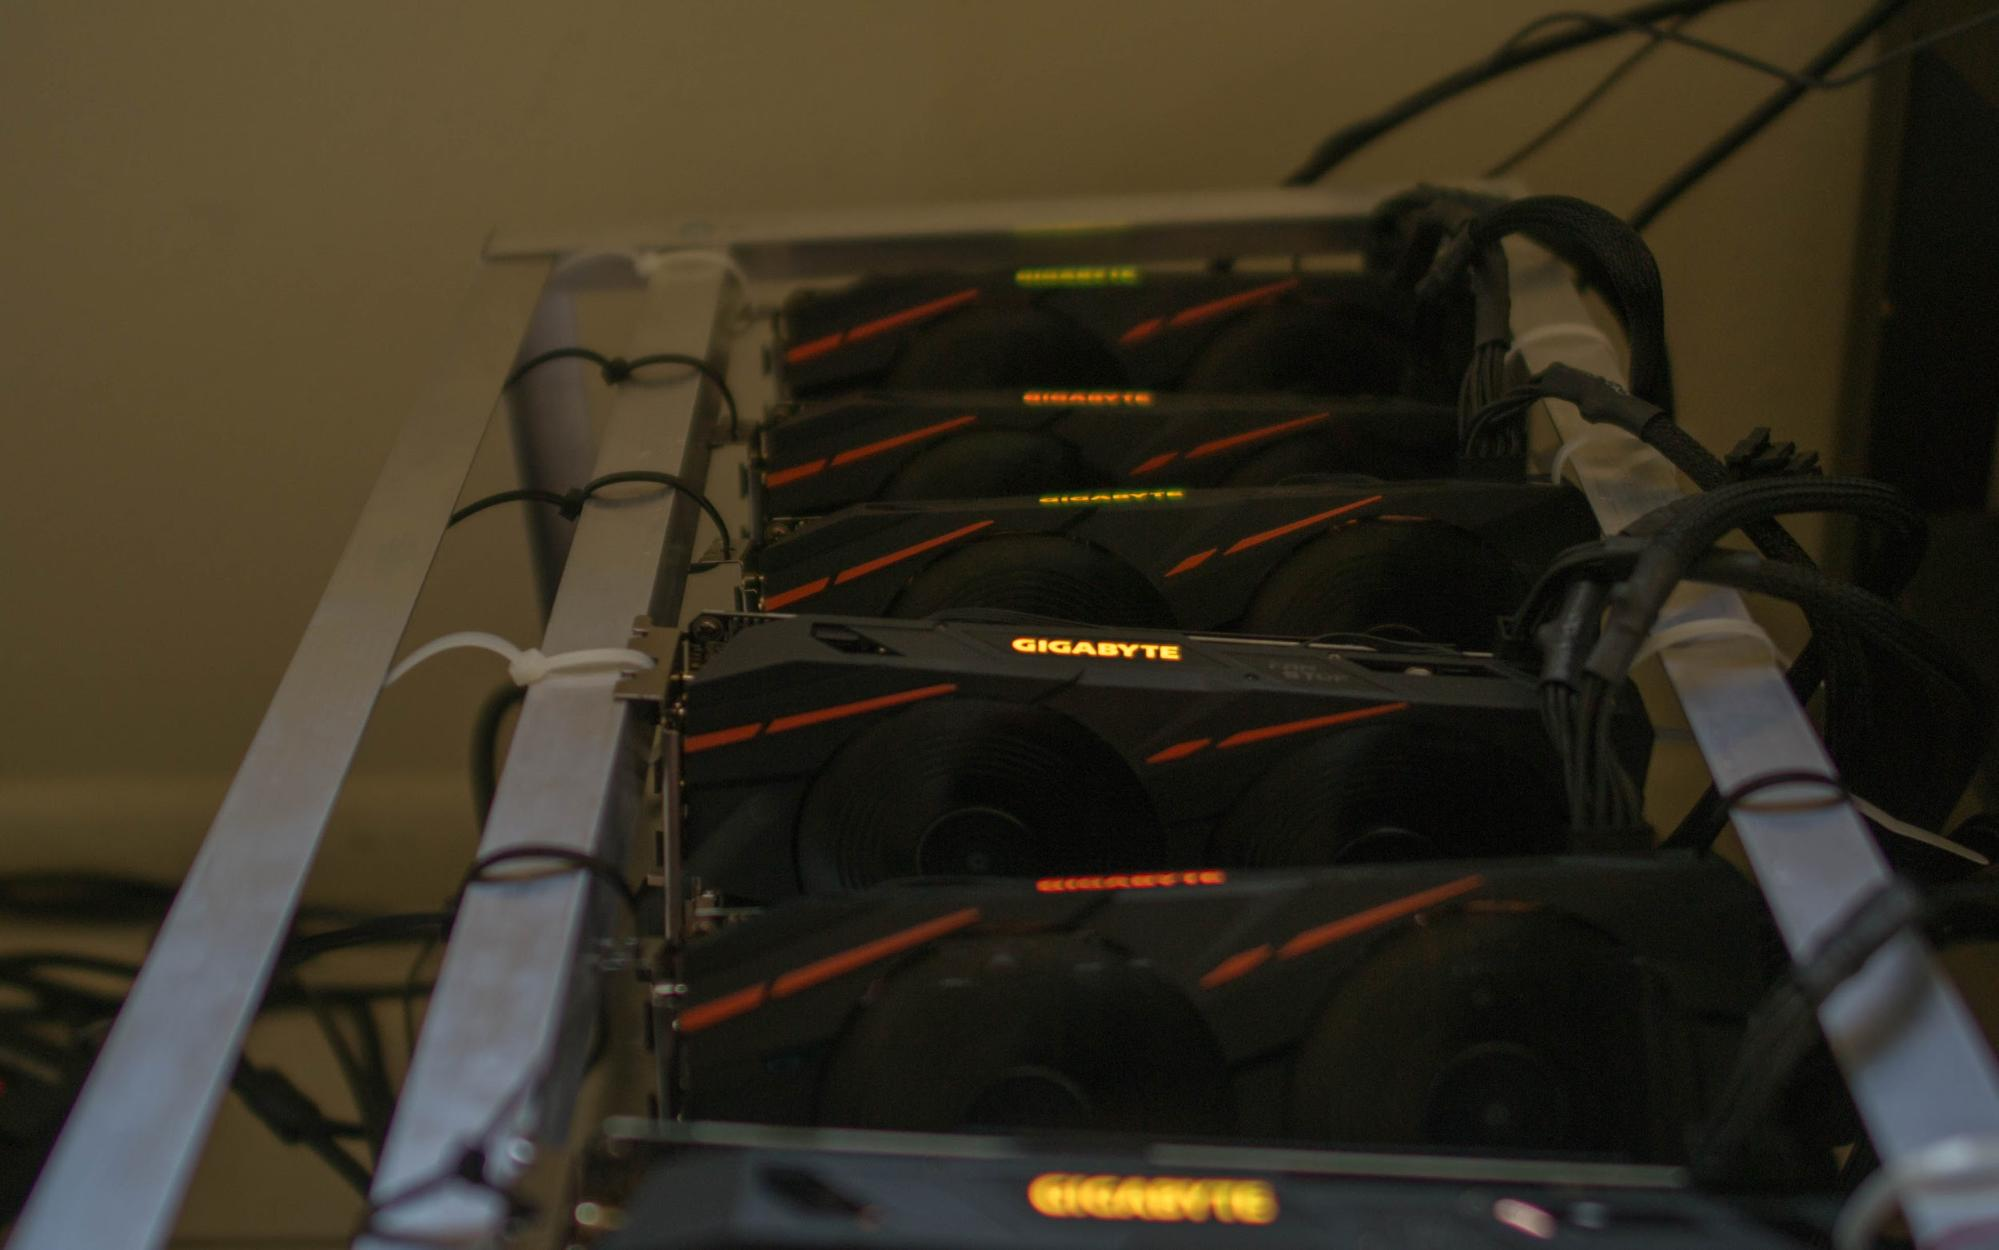 Cryptocurrency Mining Is Fueling a GPU Shortage - VICE